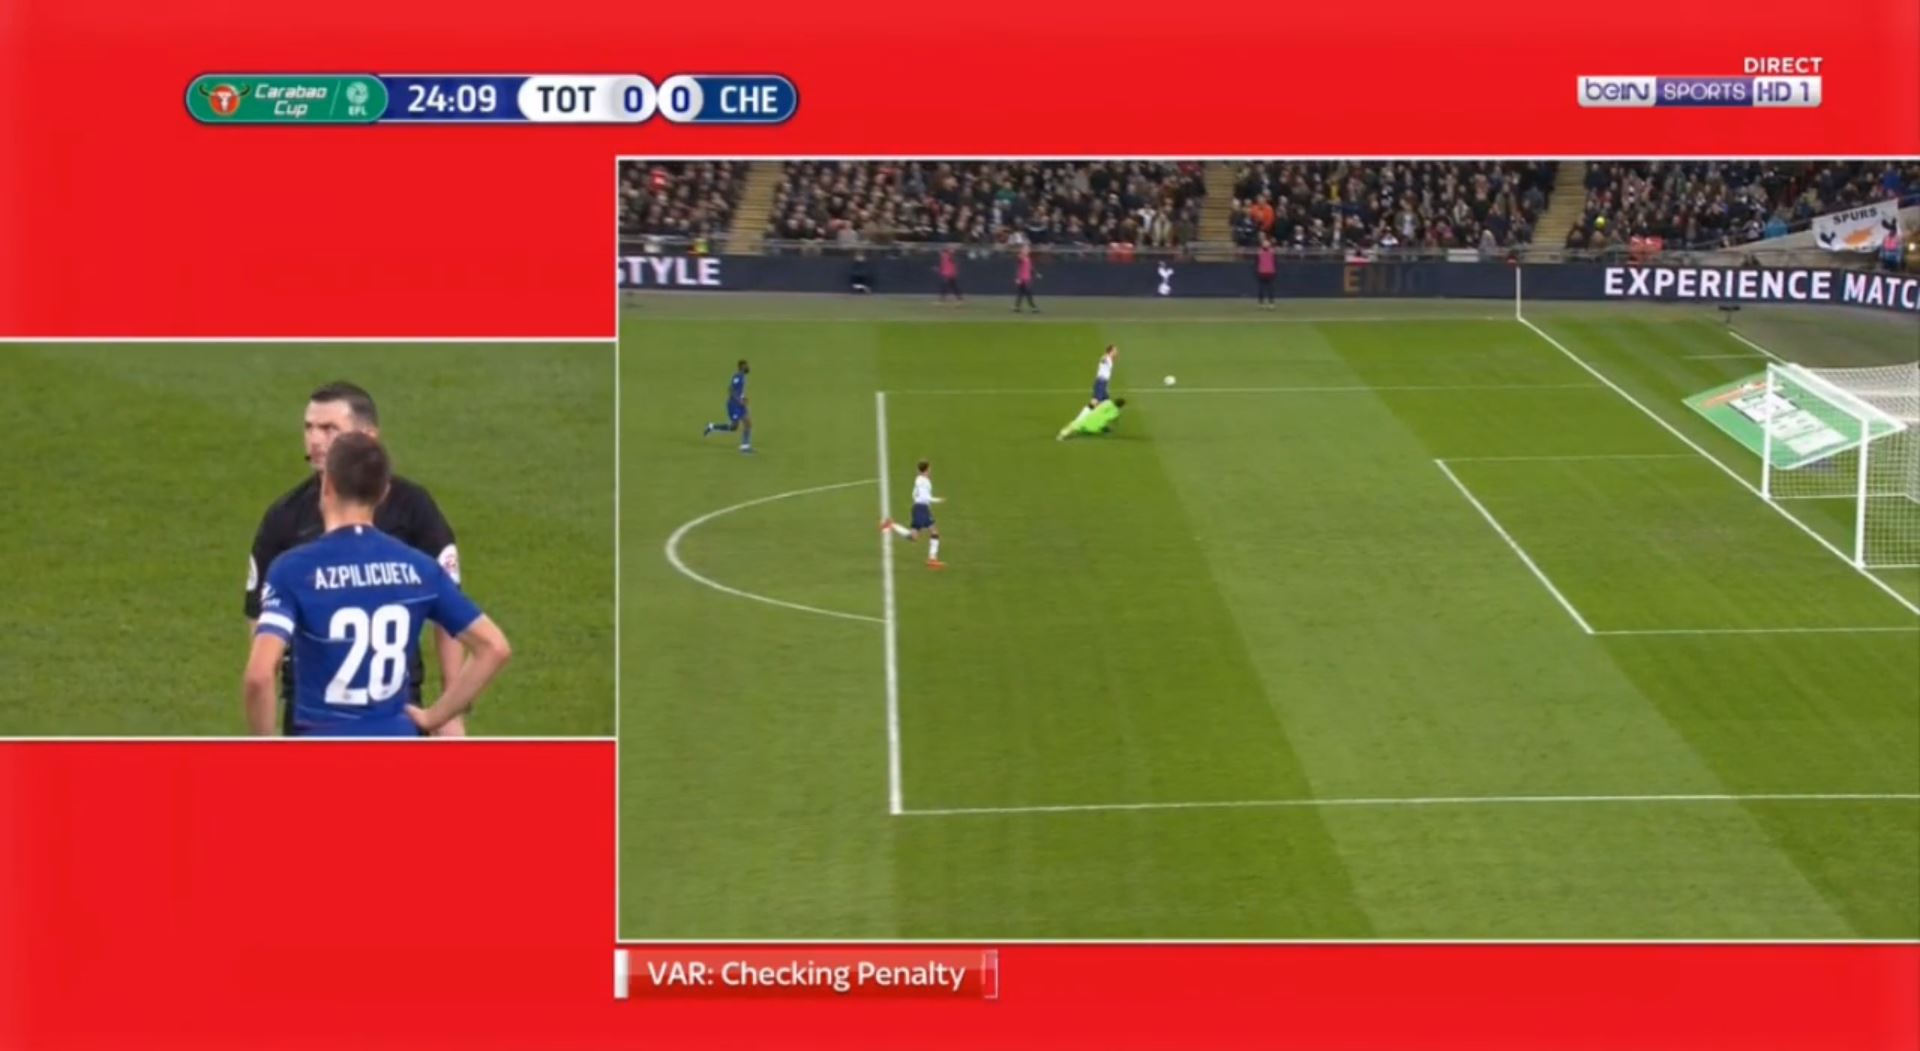 WATCH: VAR Rules Harry Kane Onside And Gives Tottenham A Penalty